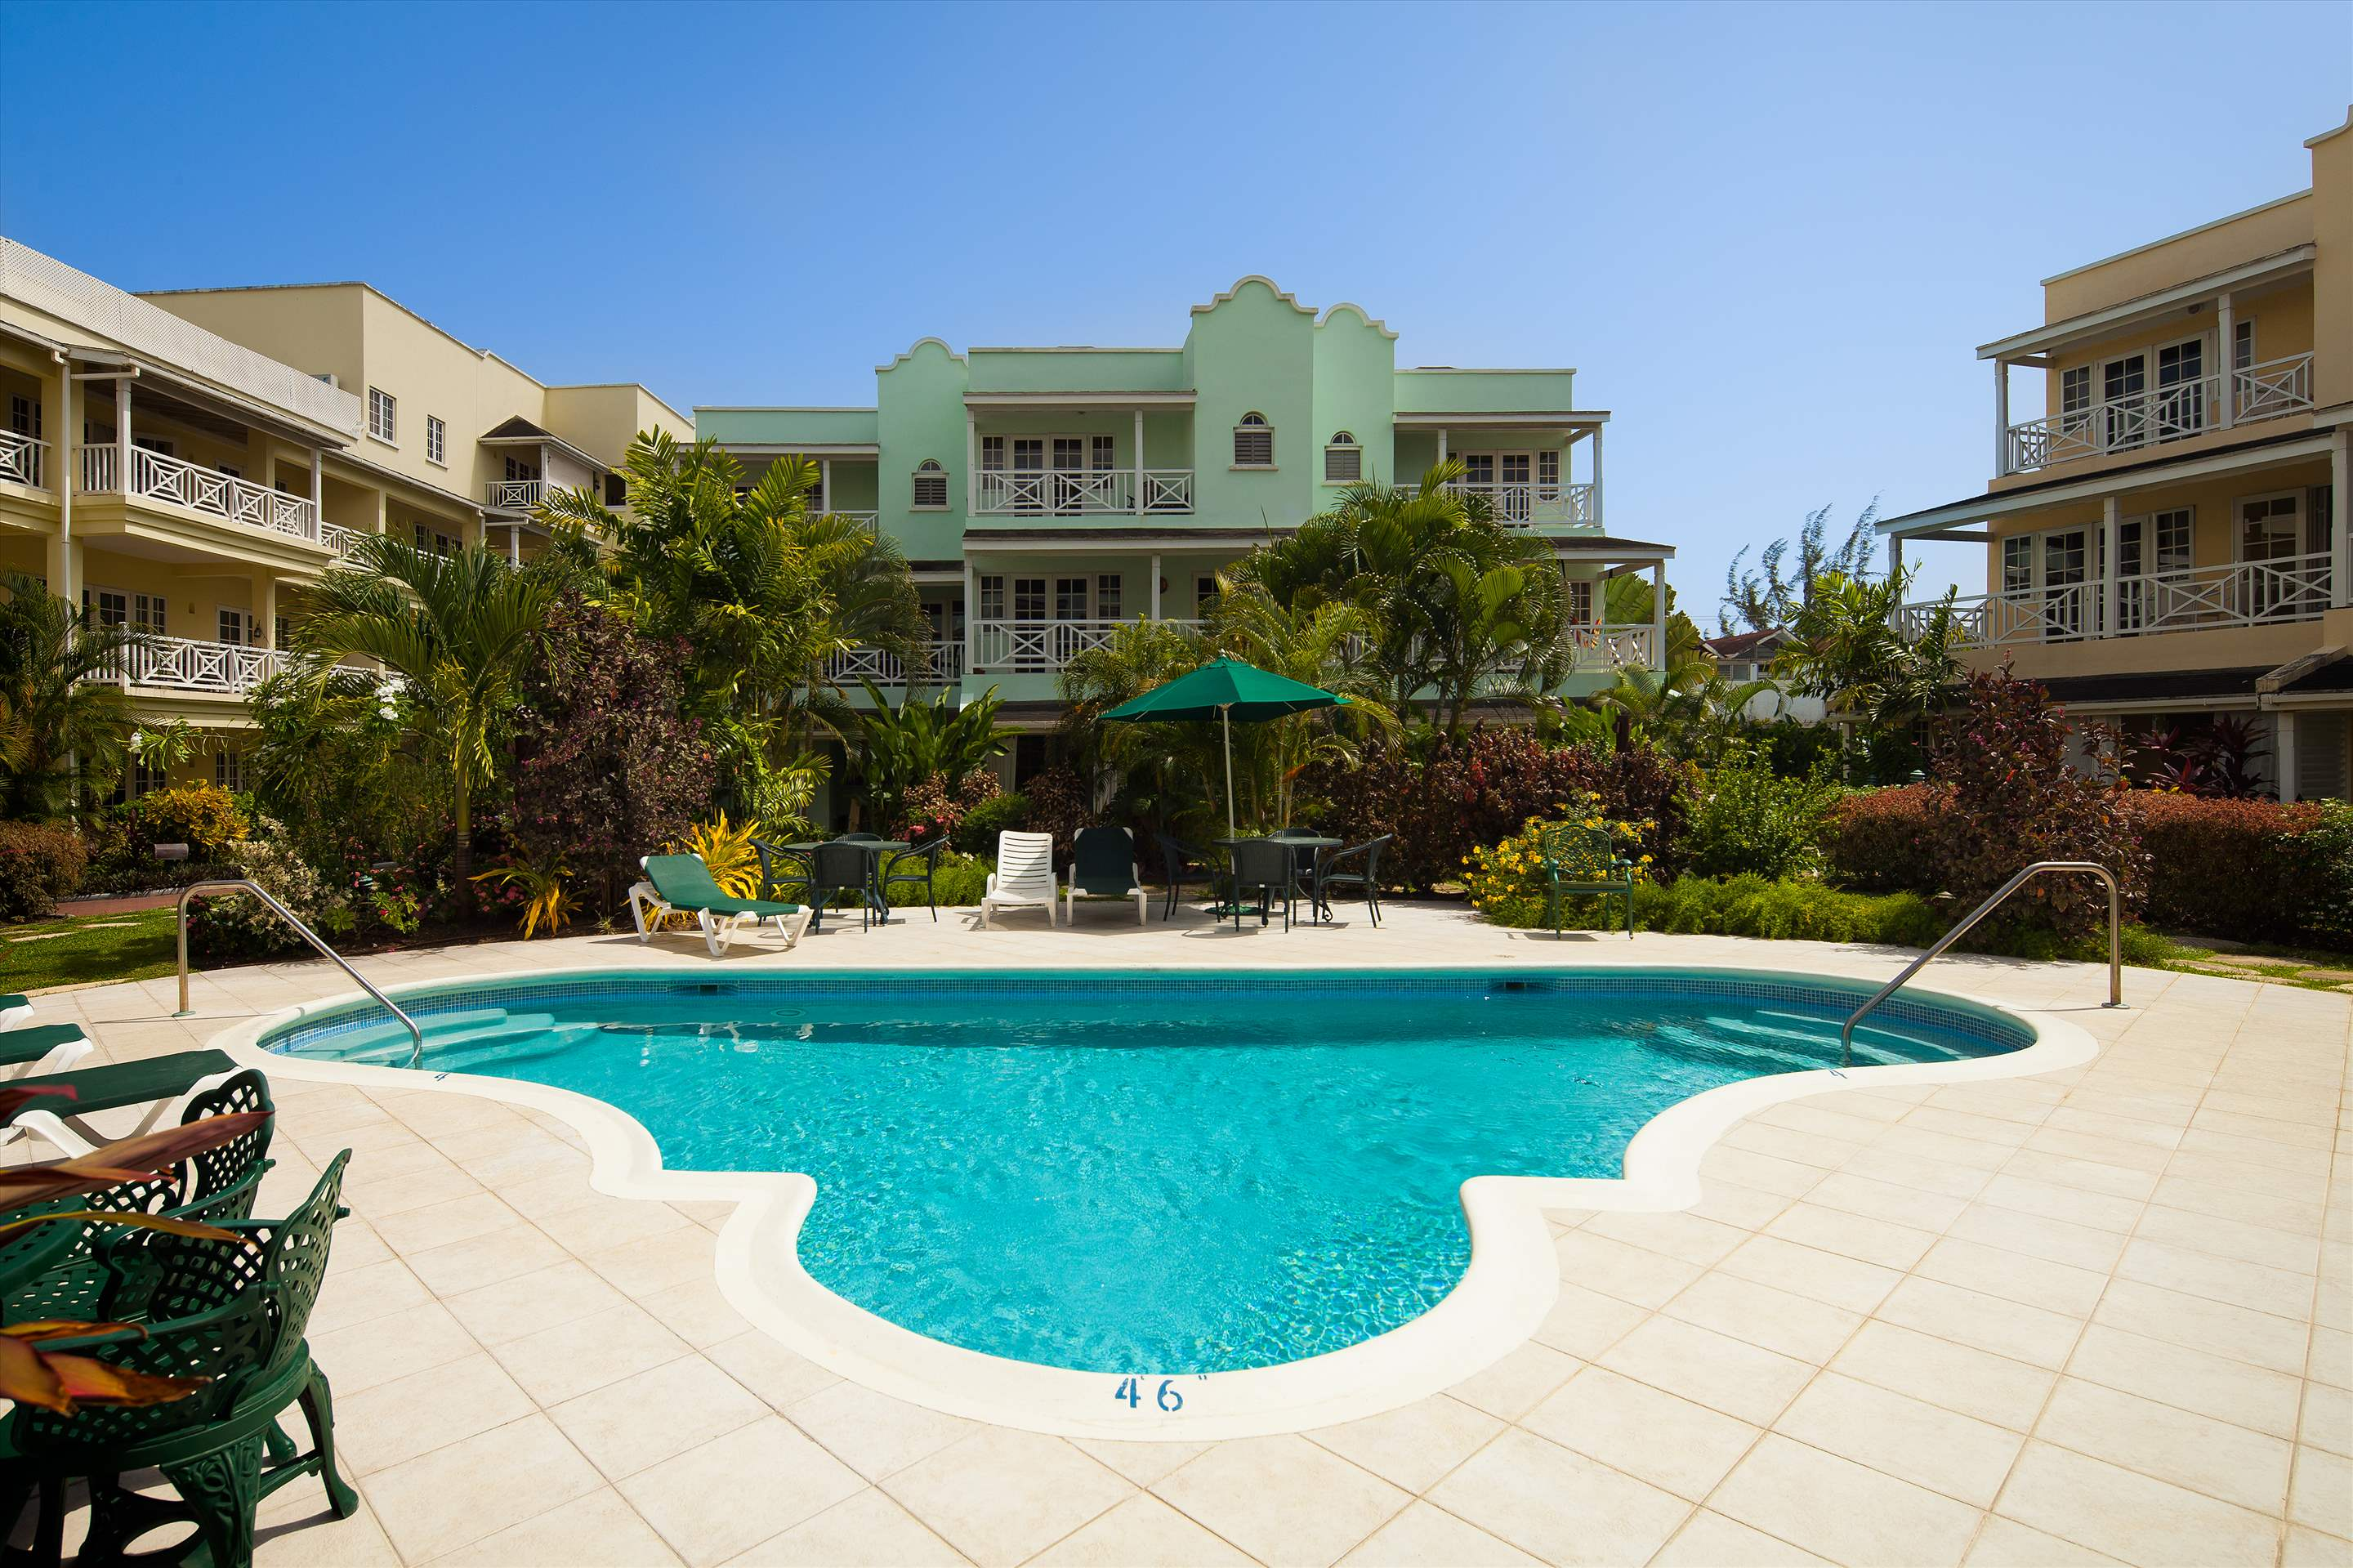 Margate Gardens 4, 3 bedroom, 3 bedroom apartment in St. Lawrence Gap & South Coast, Barbados